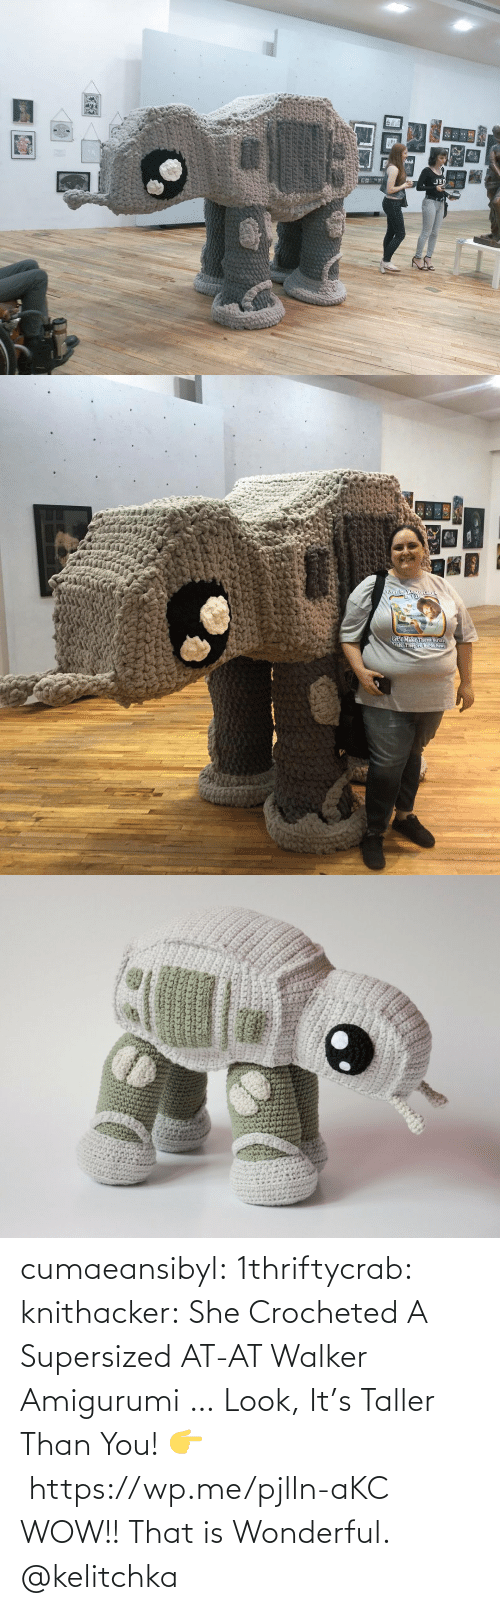 tmblr: cumaeansibyl: 1thriftycrab:  knithacker:  She Crocheted A Supersized AT-AT Walker Amigurumi … Look, It's Taller Than You! 👉 https://wp.me/pjlln-aKC  WOW!! That is Wonderful.   @kelitchka